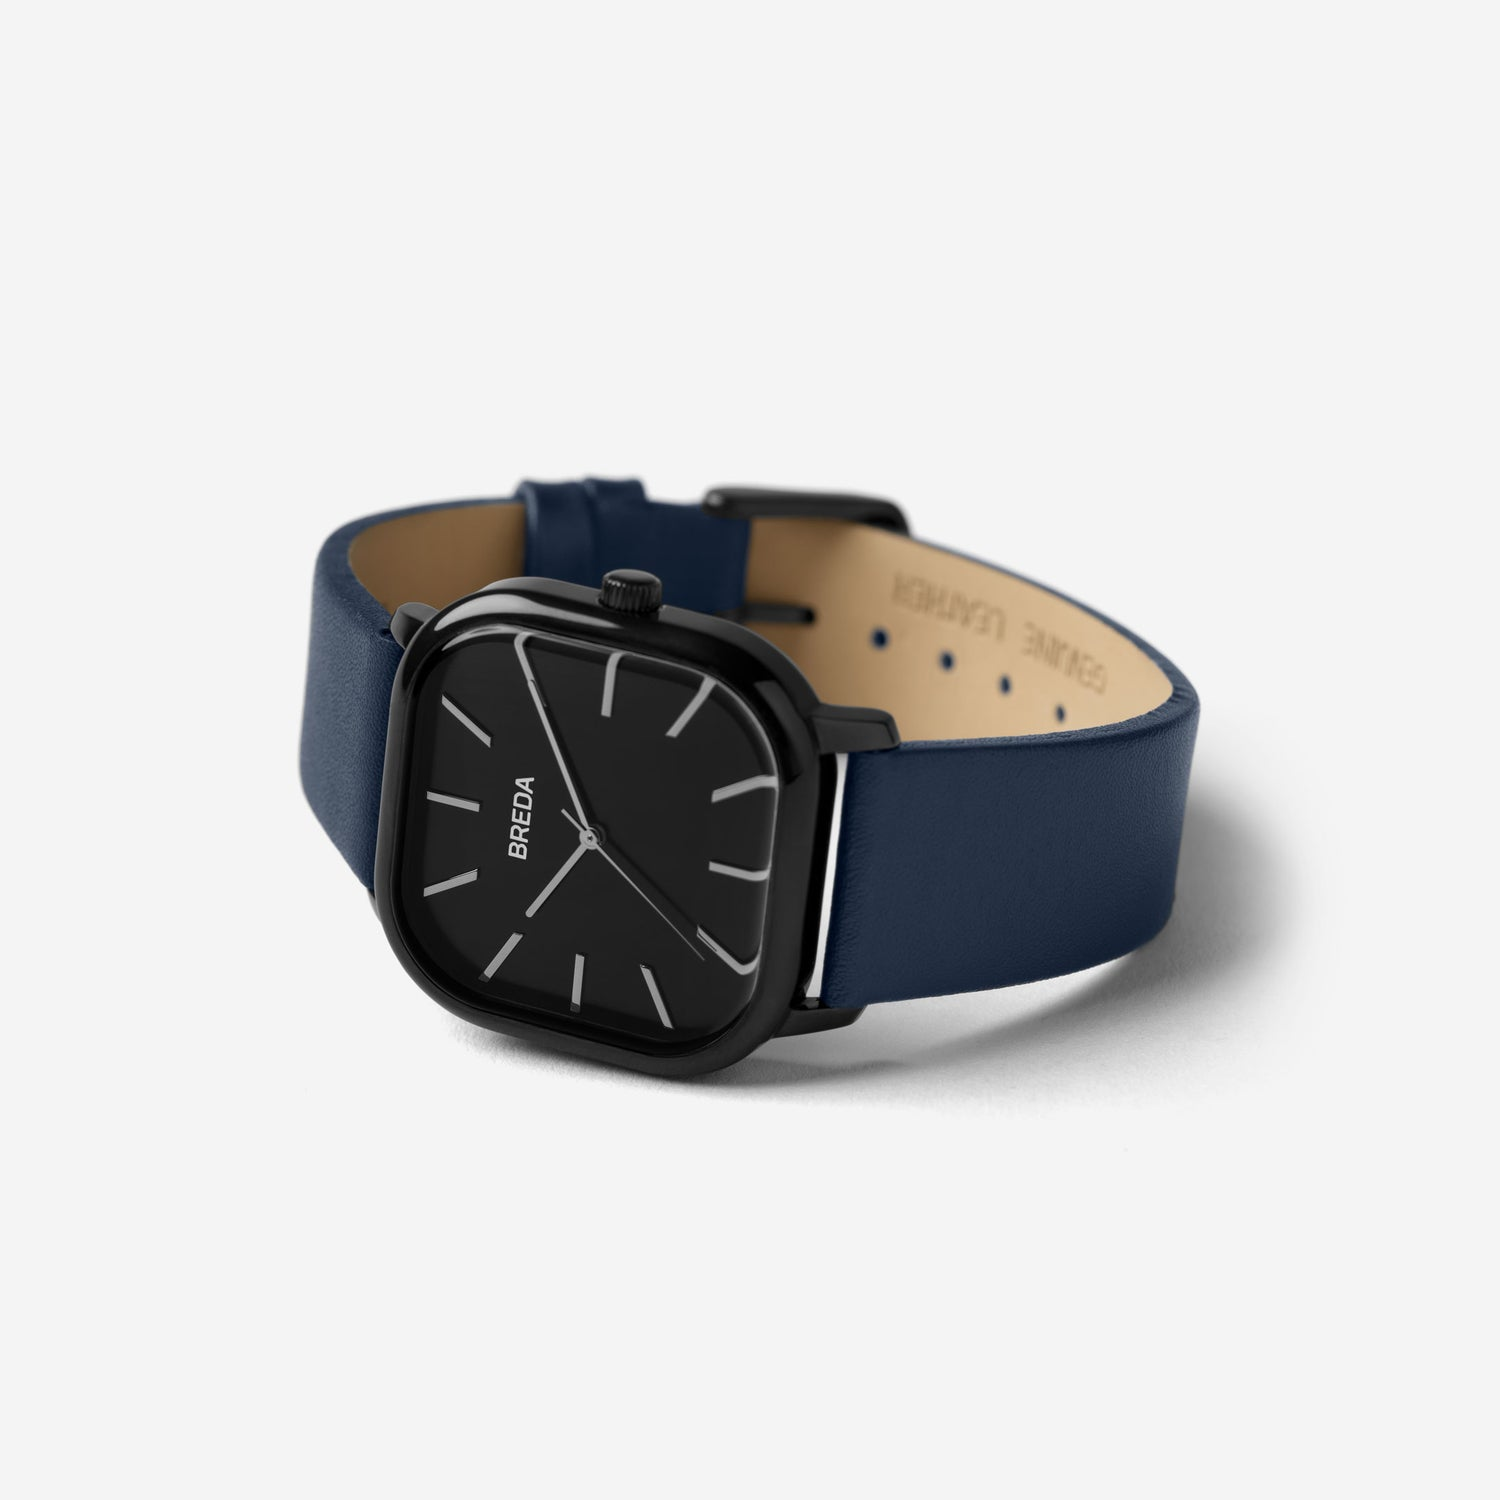 breda-visser-1728d-black-navy-leather-watch-angle